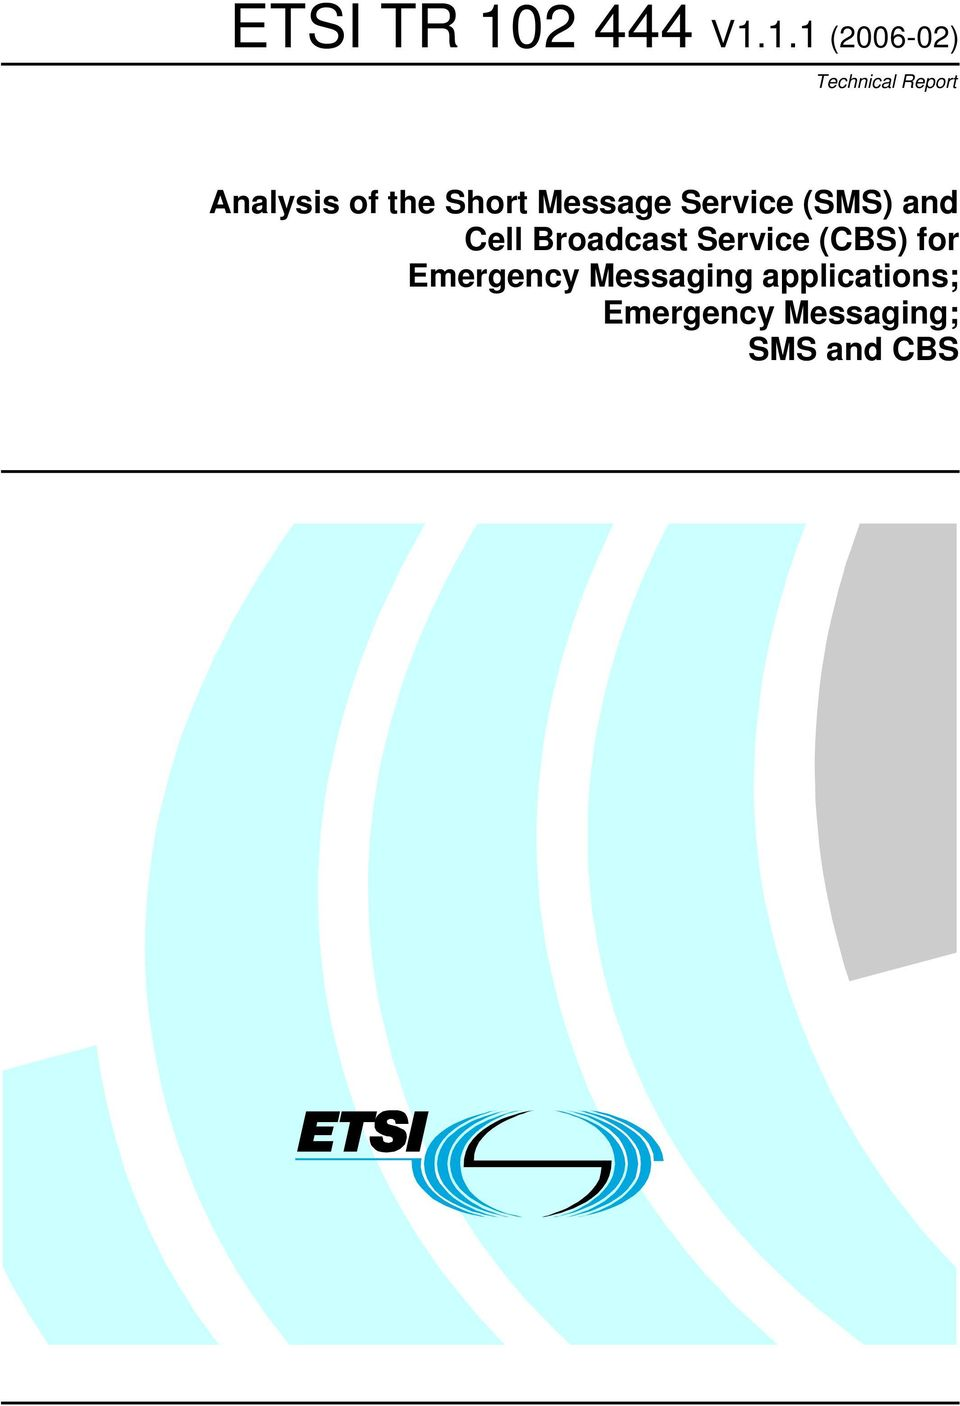 Cell Broadcast Service (CBS) for Emergency